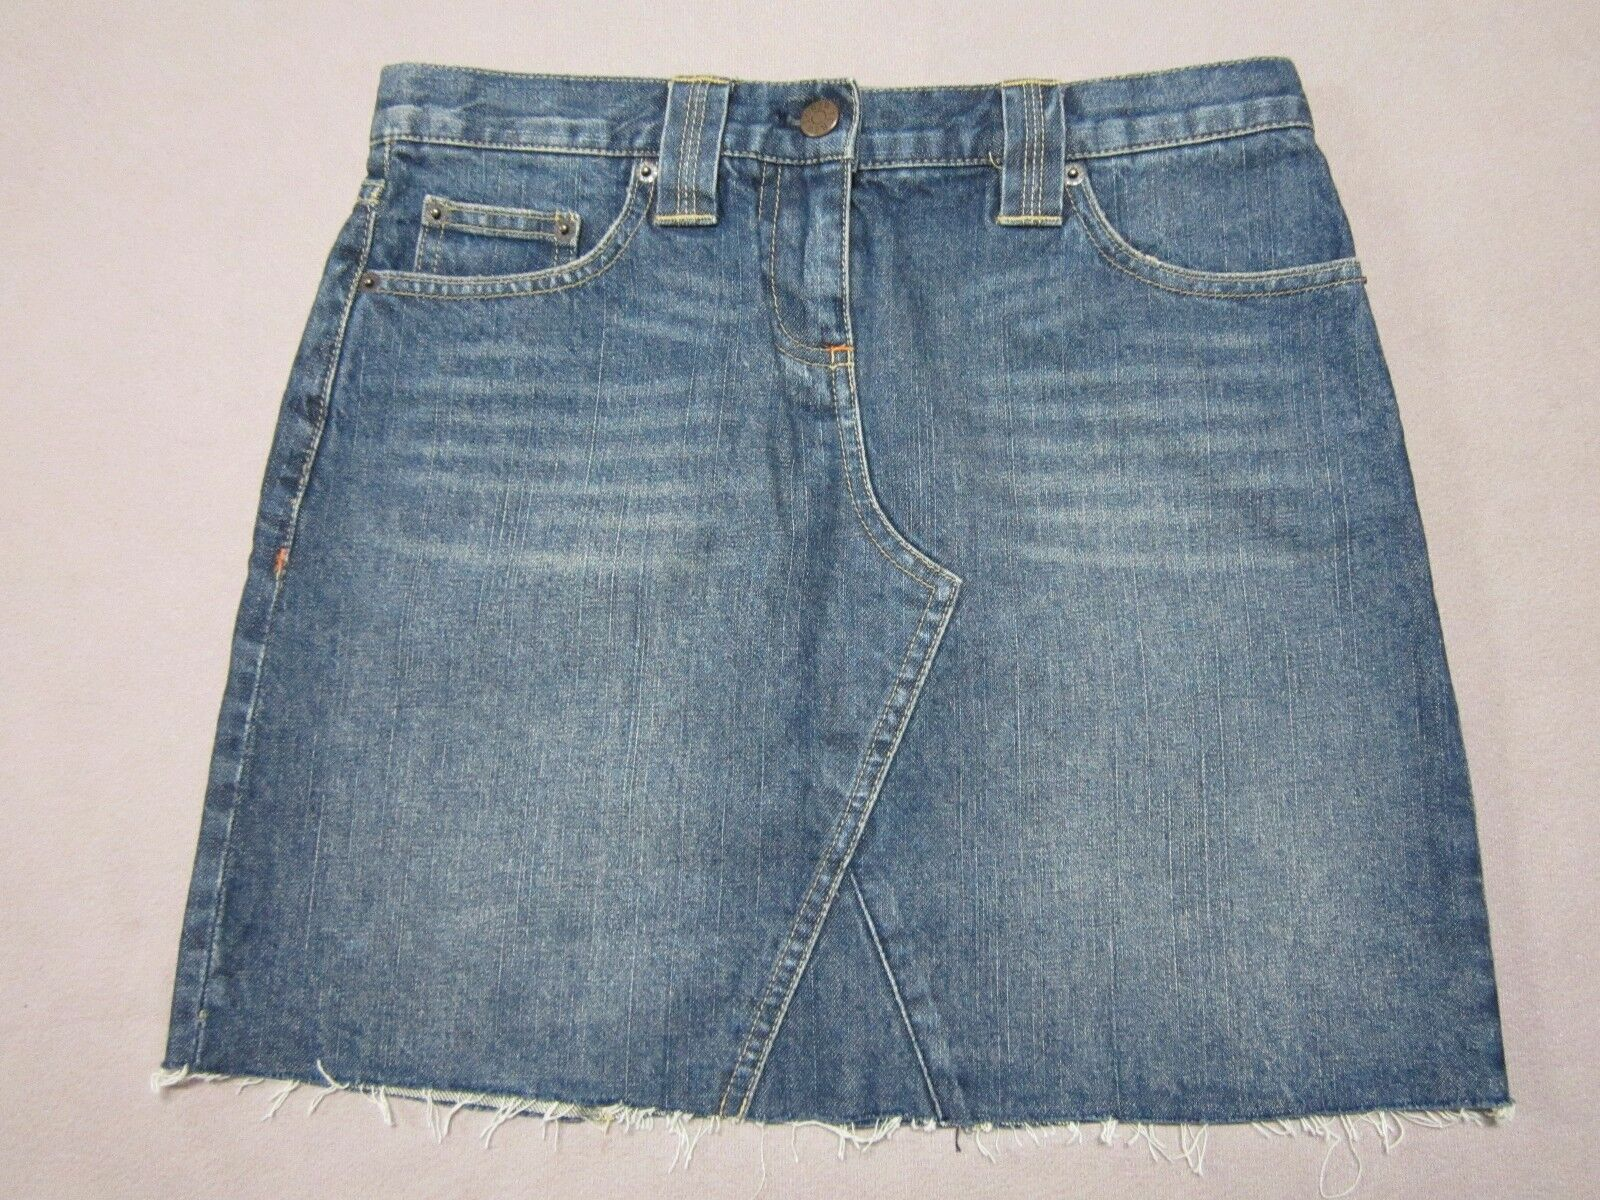 J.CREW WOMENS MEDIUM blueE CLASSY DENIM JEAN PENCIL SKIRT SIZE 28 NEW